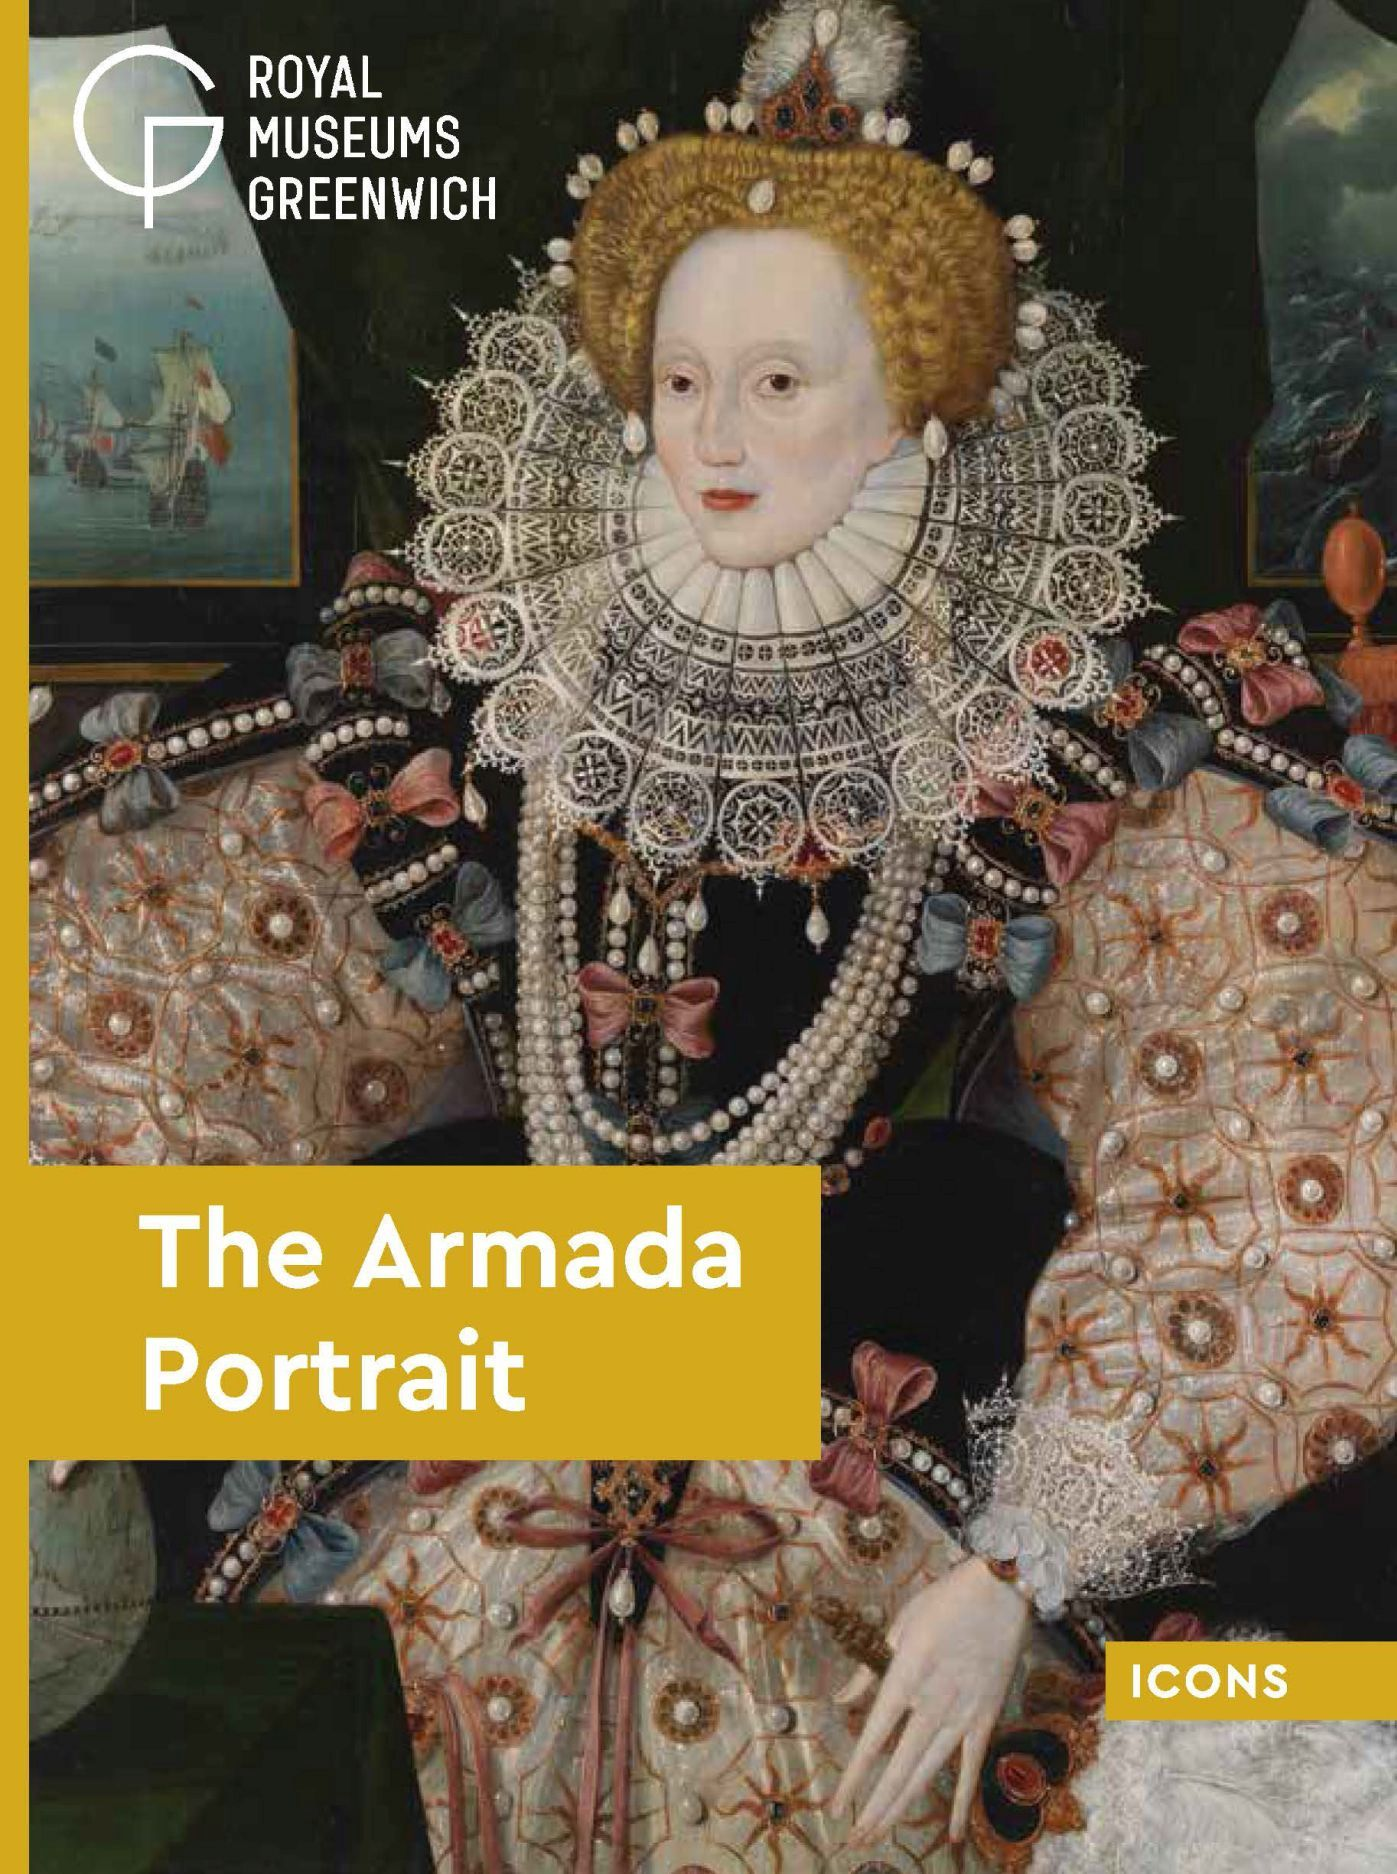 The Armada Portrait